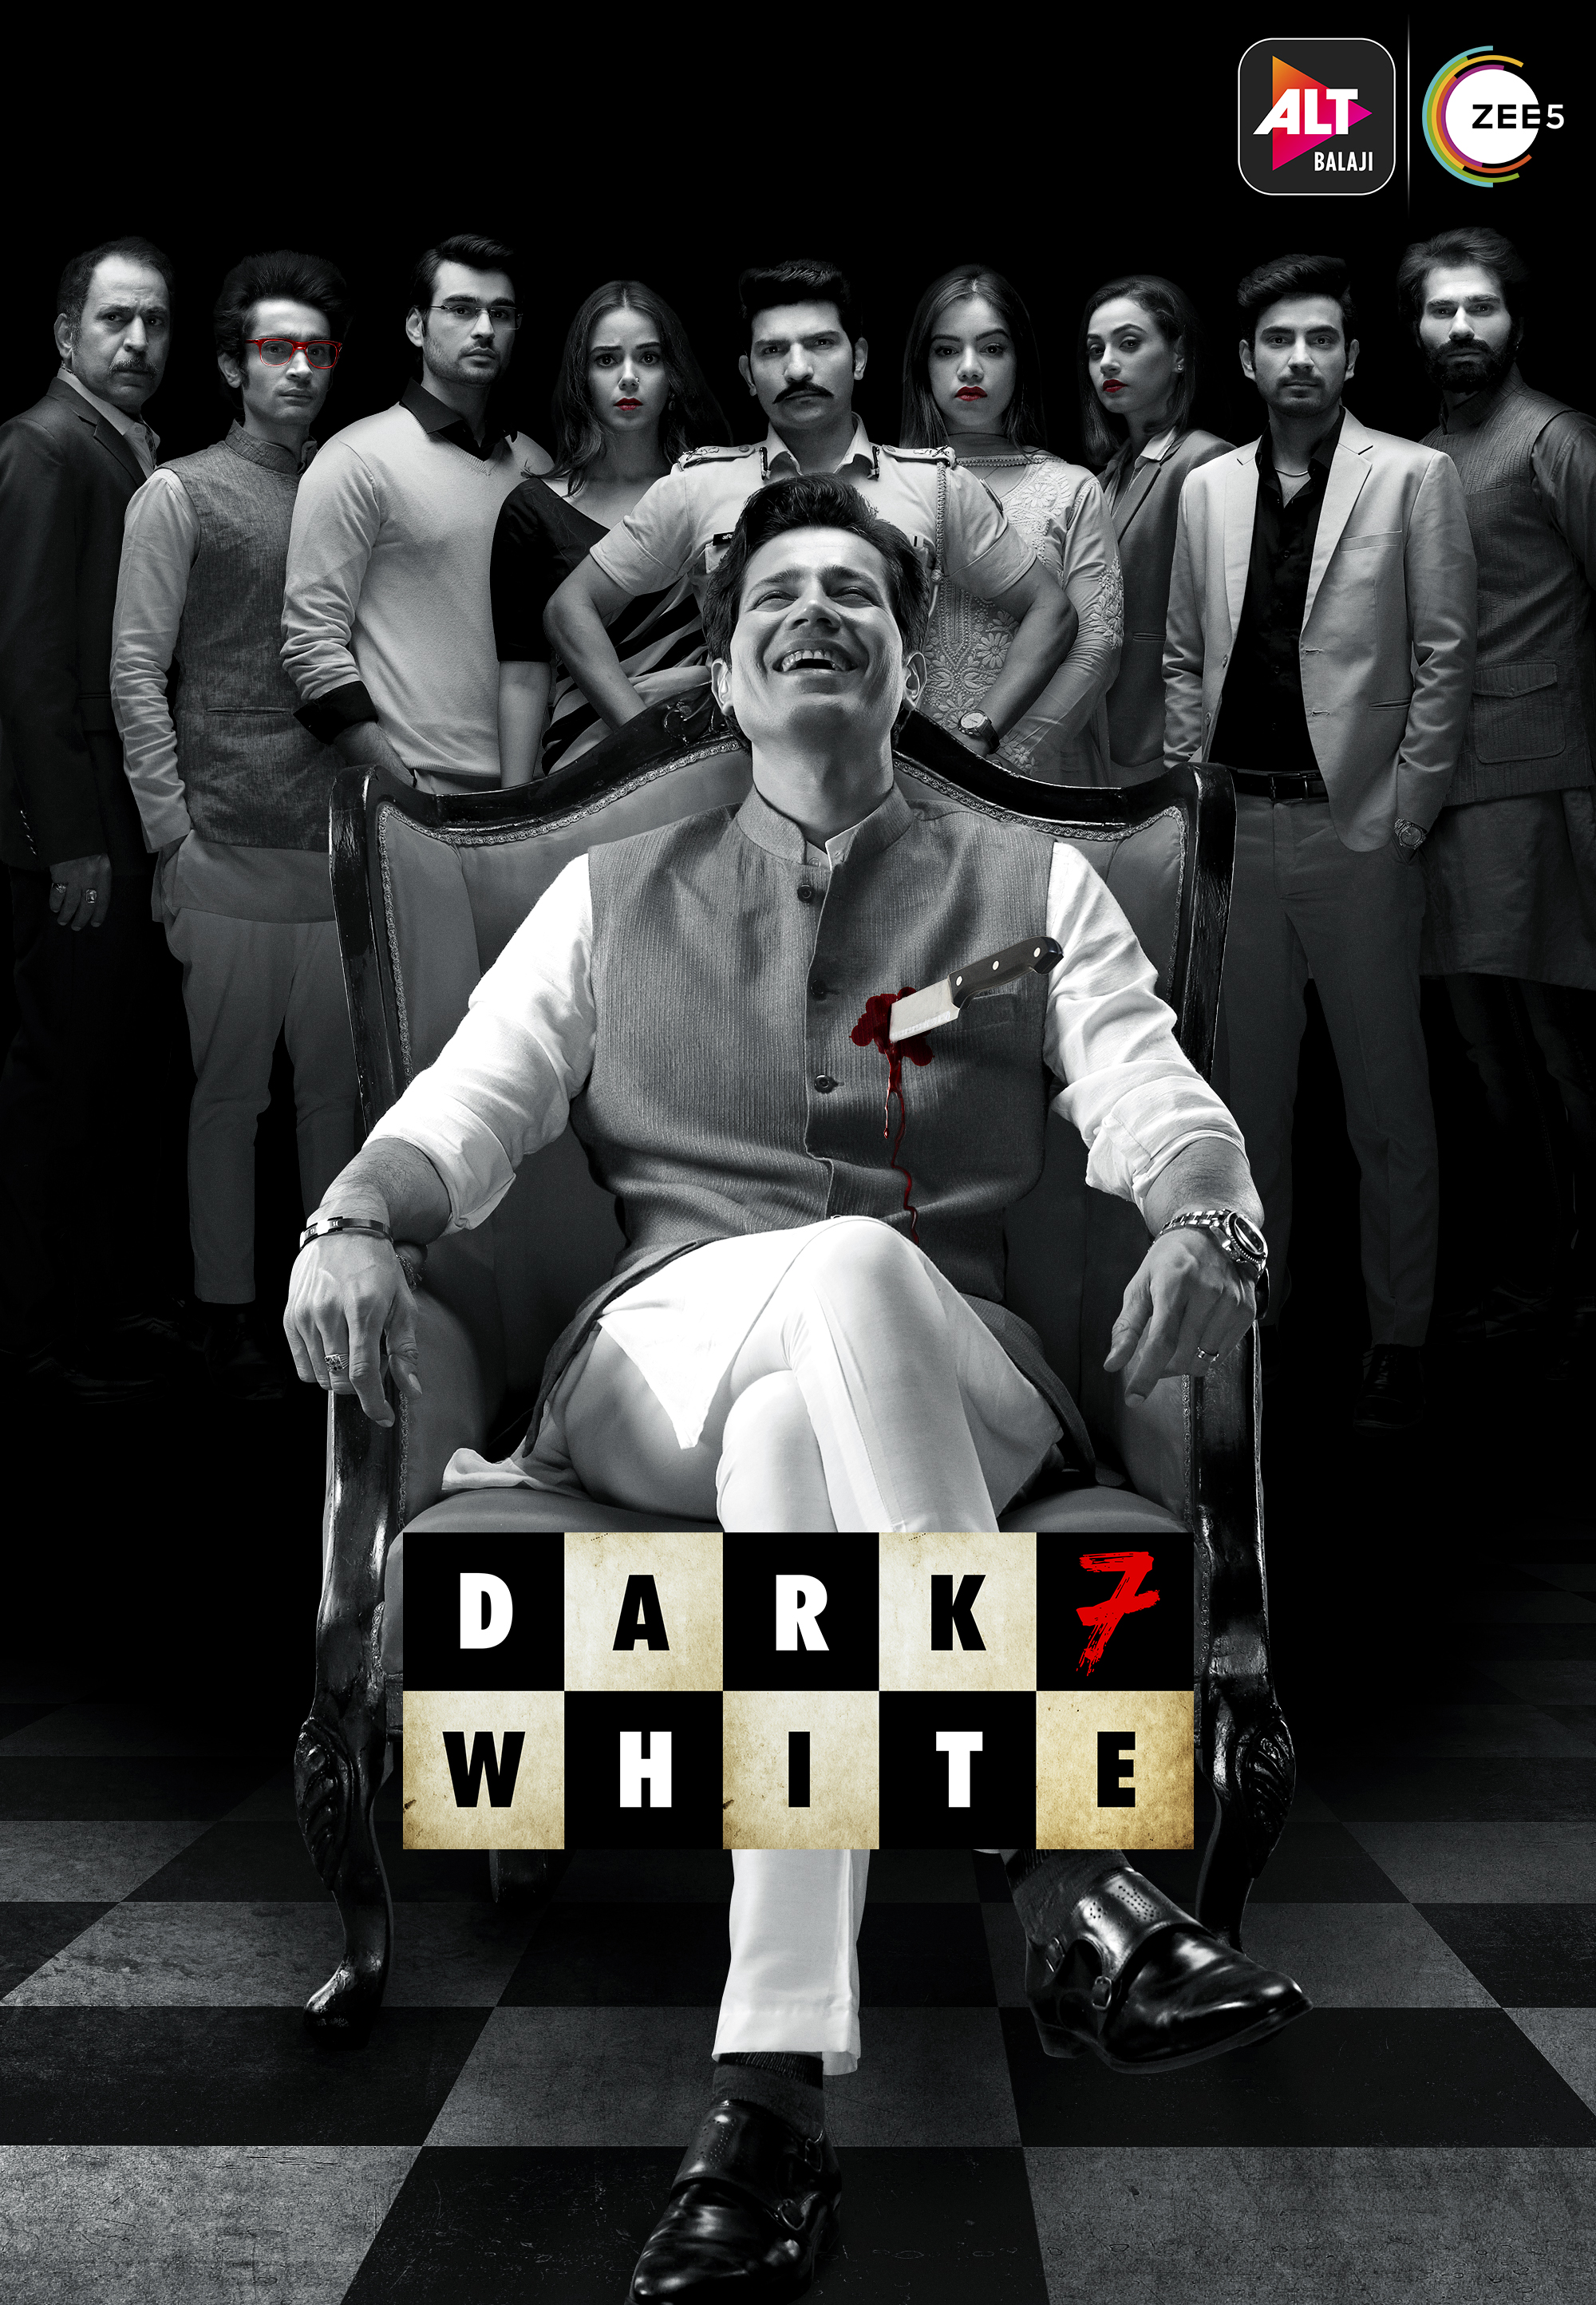 Dark 7 White 2020 S01 Hindi Complete ALTBalaji Original Web Series 720p HDRip 1.3GB Download